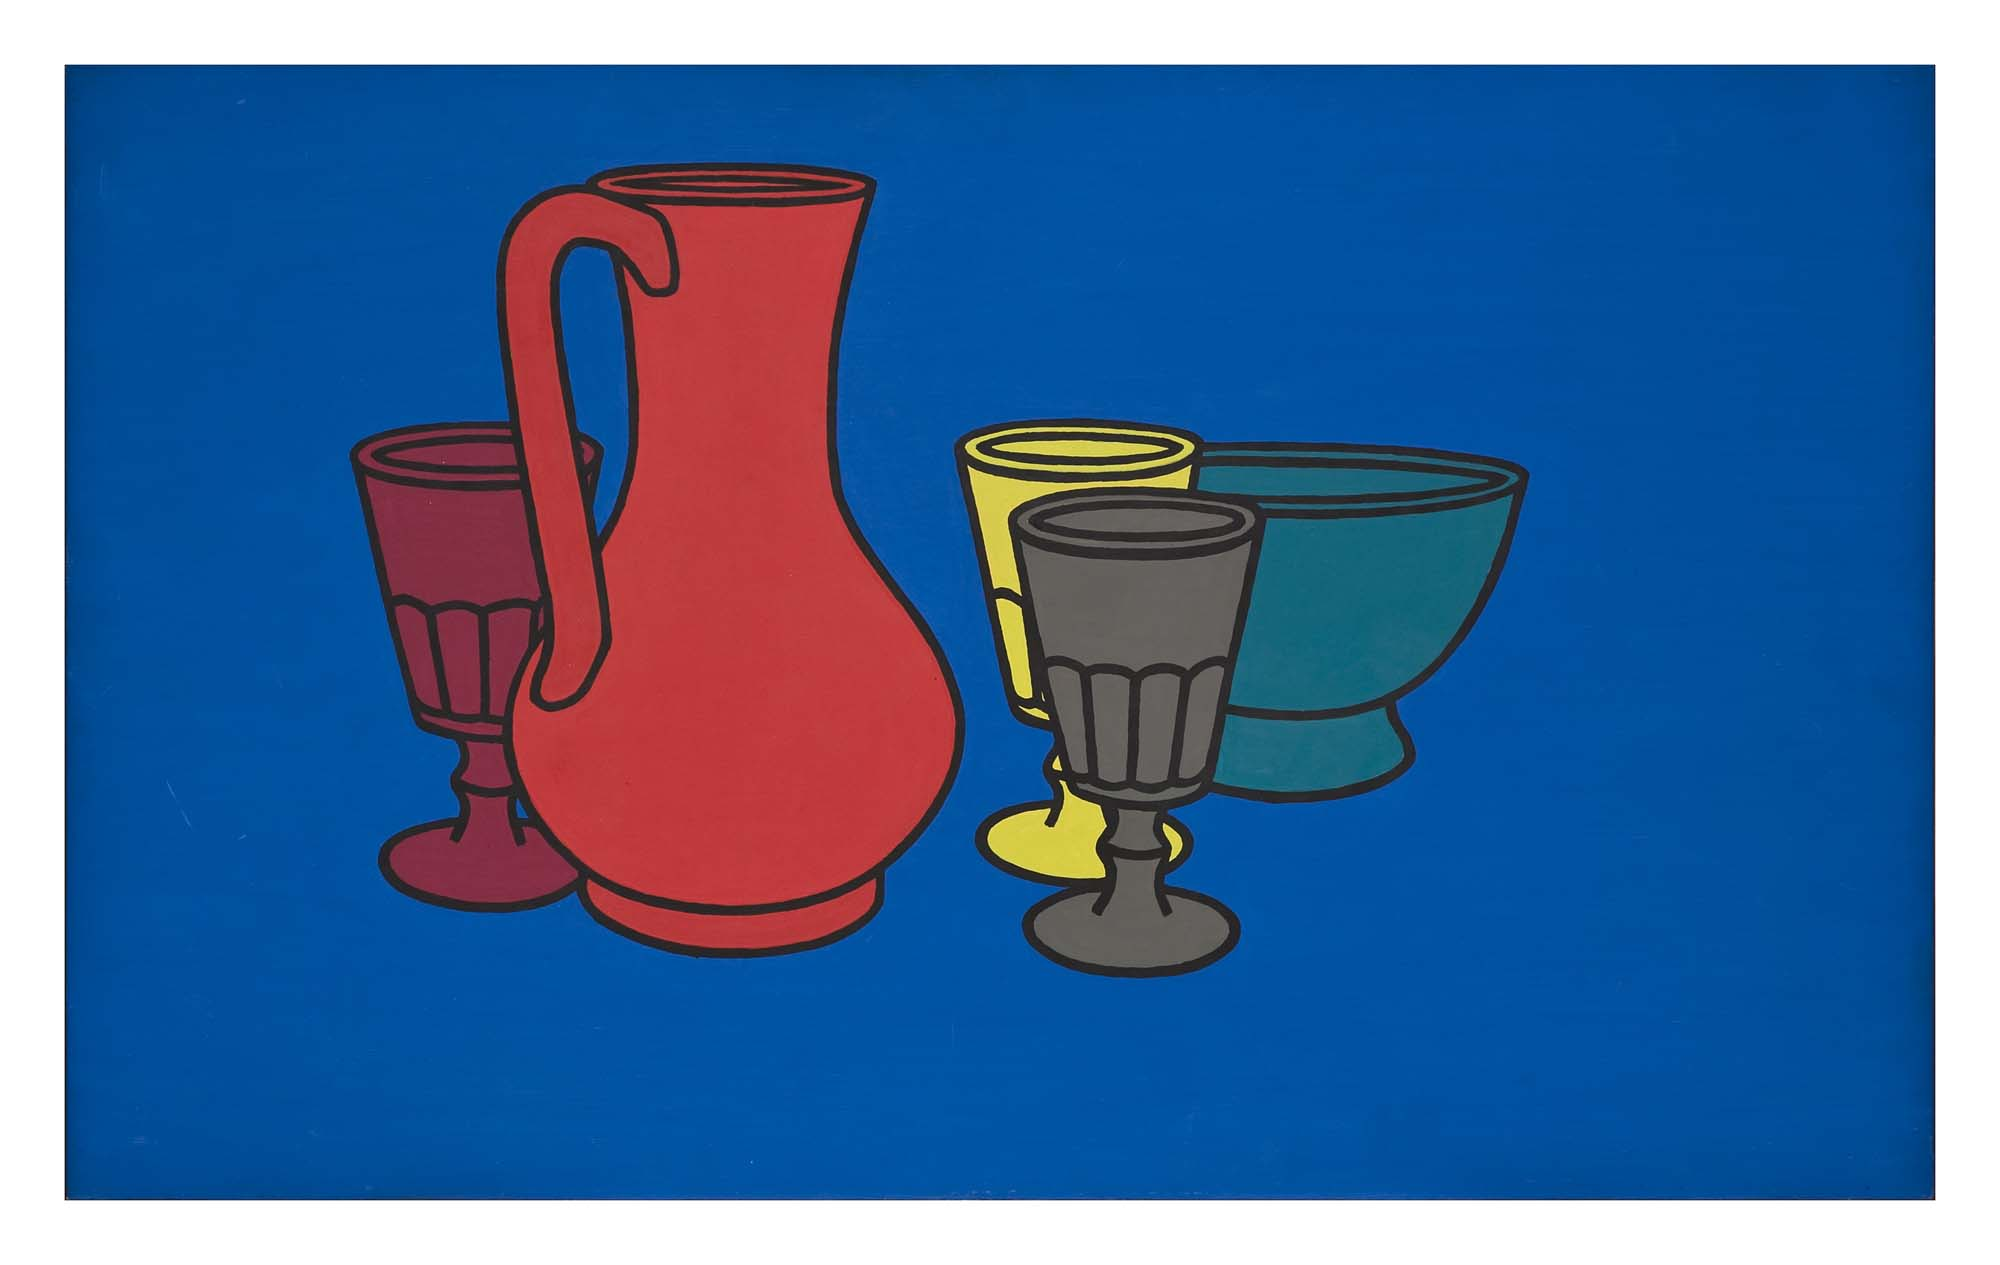 a painting of a jug and three glasses against a blue background